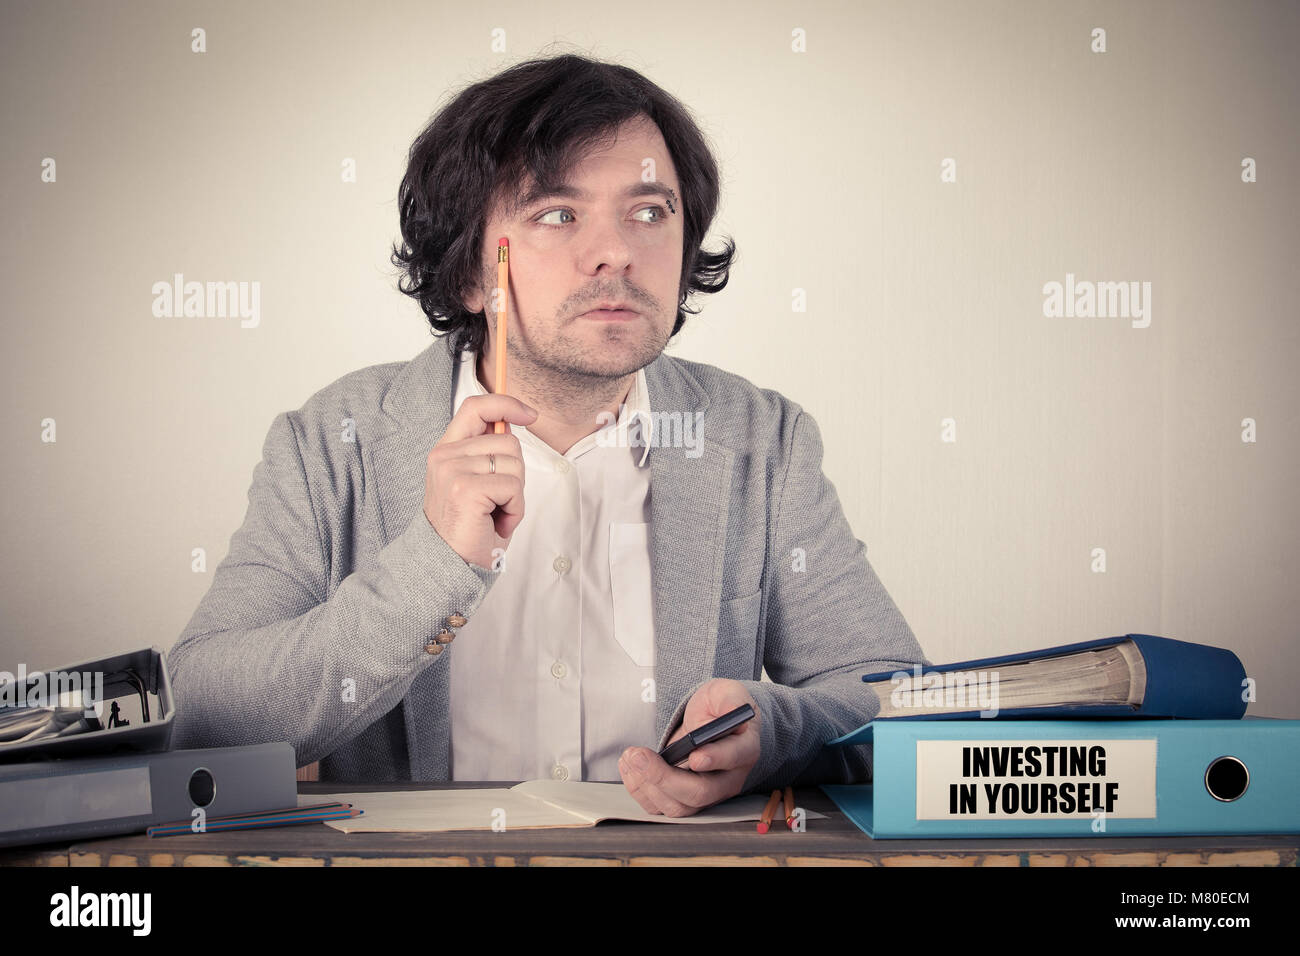 Investing In Yourself on the binder, worried bussinesman thinking by the work desk - Stock Image